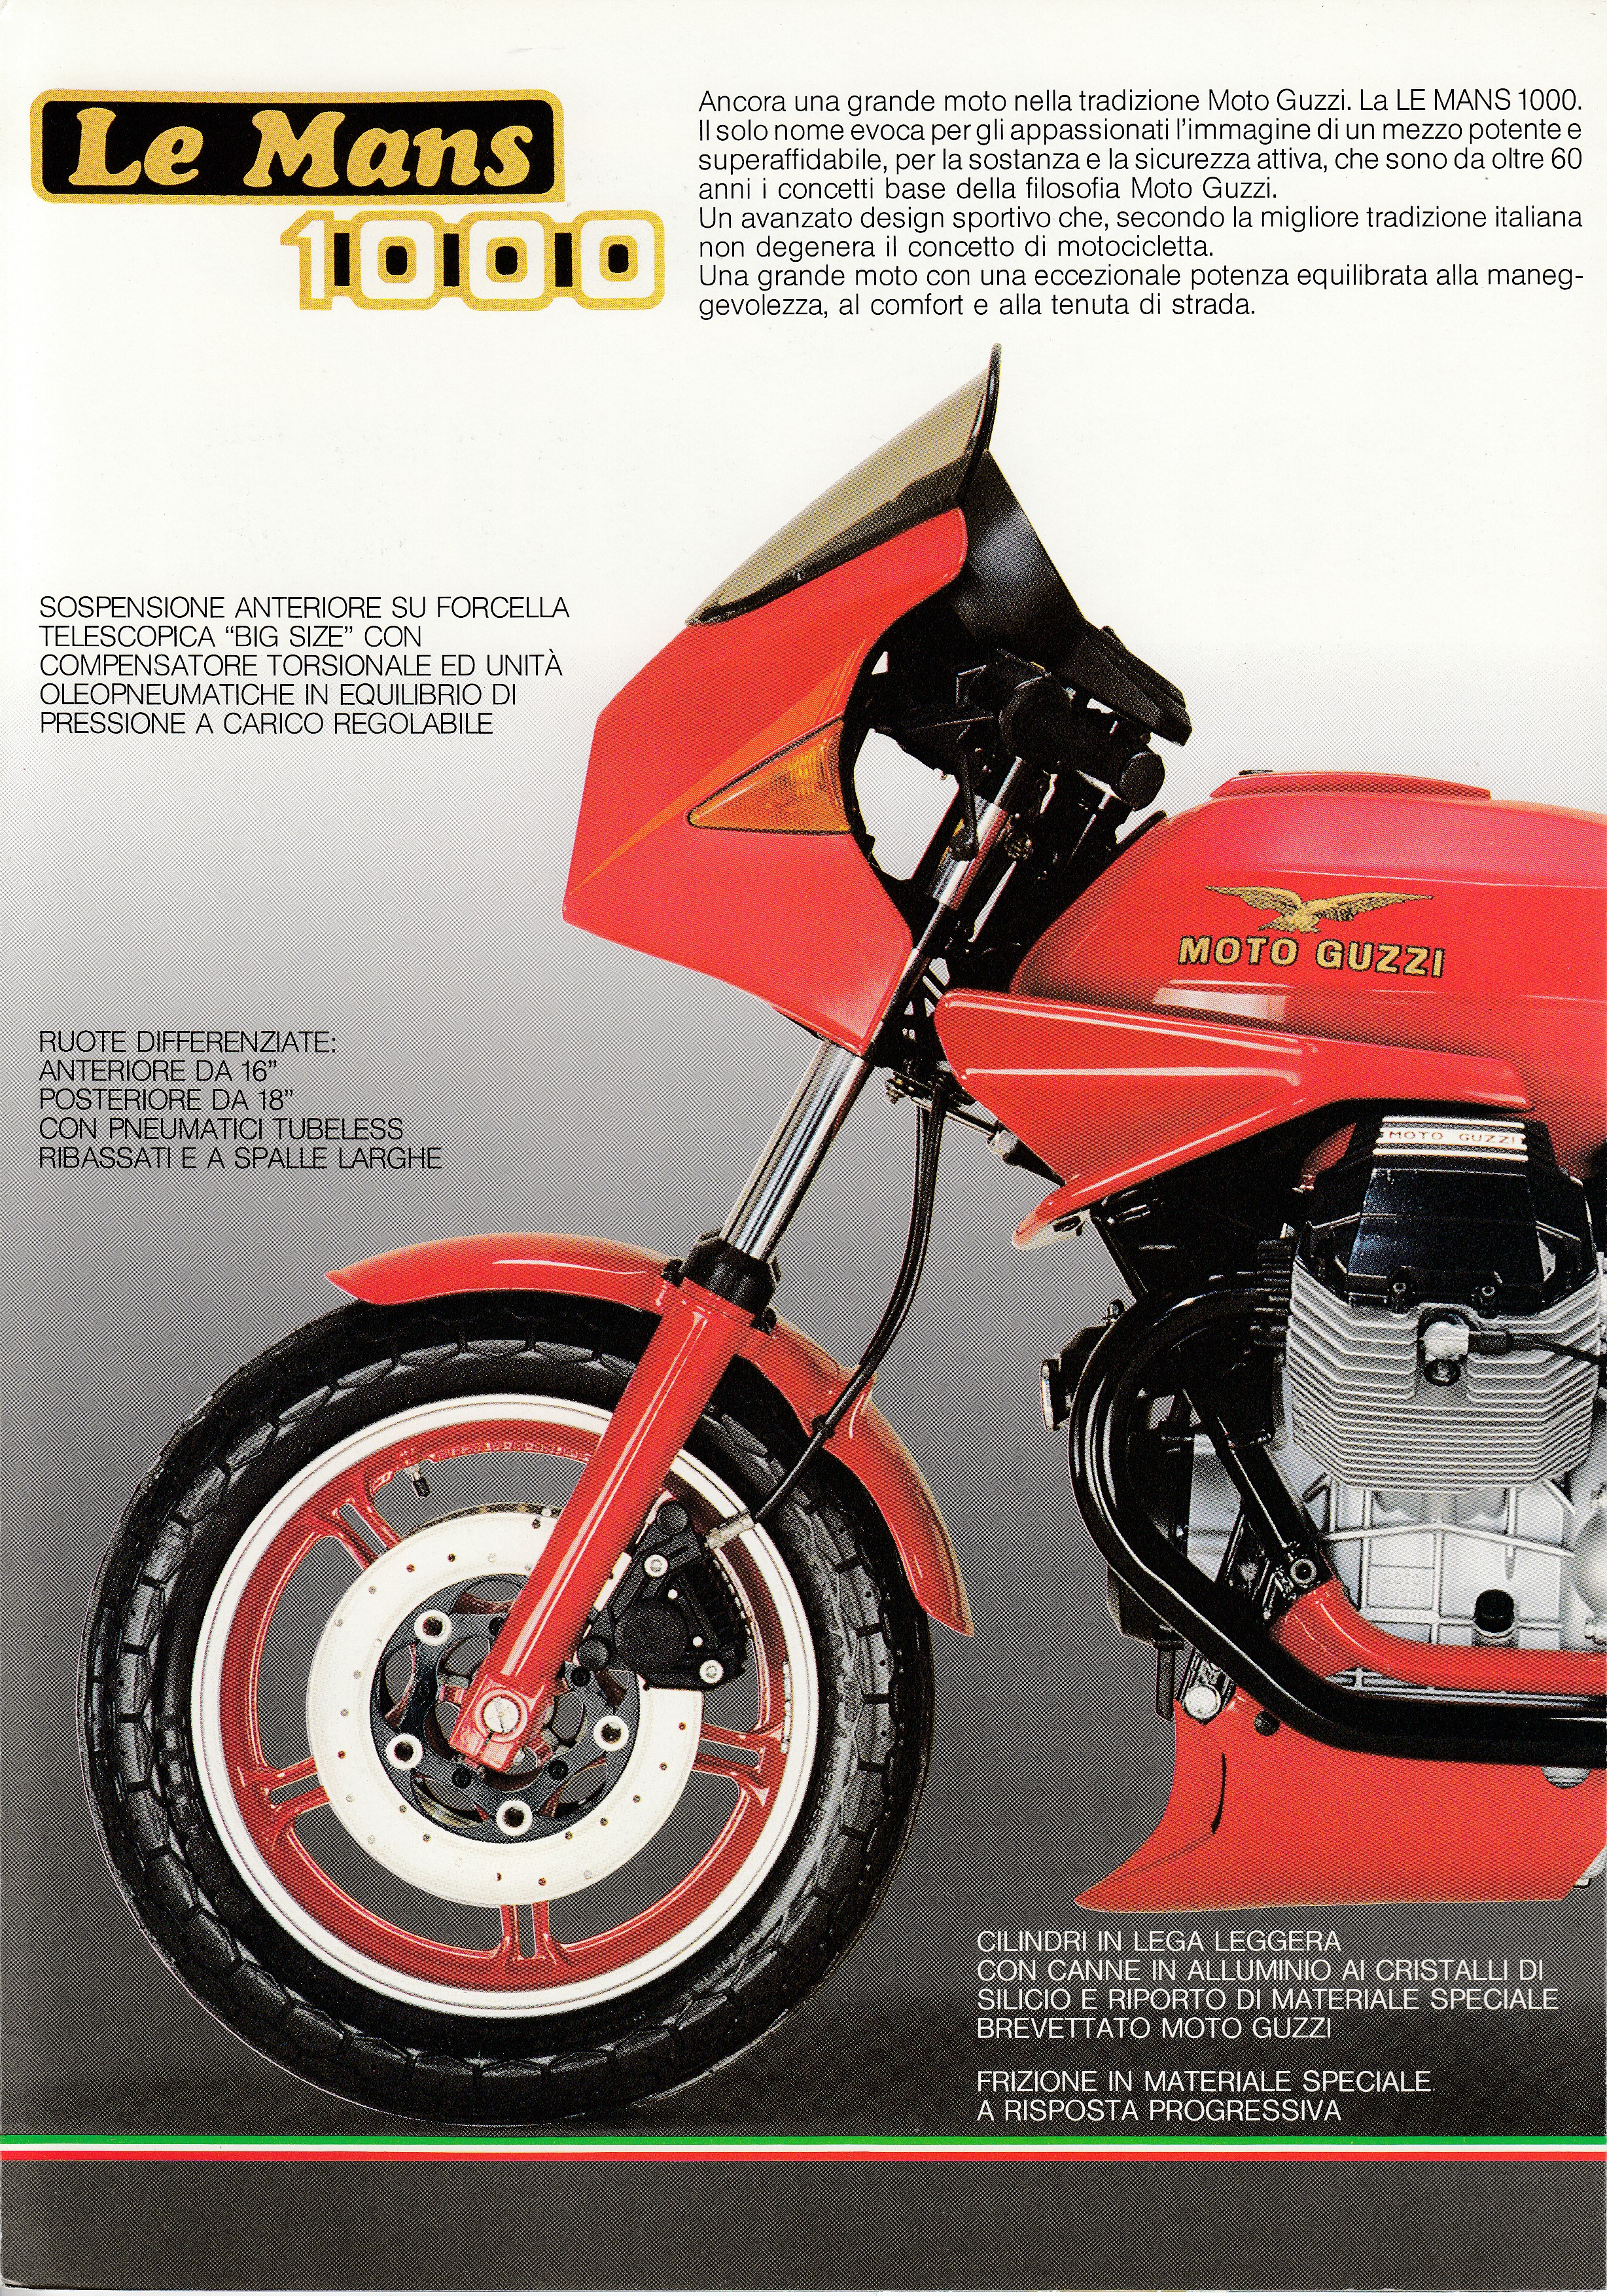 Brochure - Moto Guzzi Le Mans 1000 (red centerfold, wind tunnel on cover) [Italian]